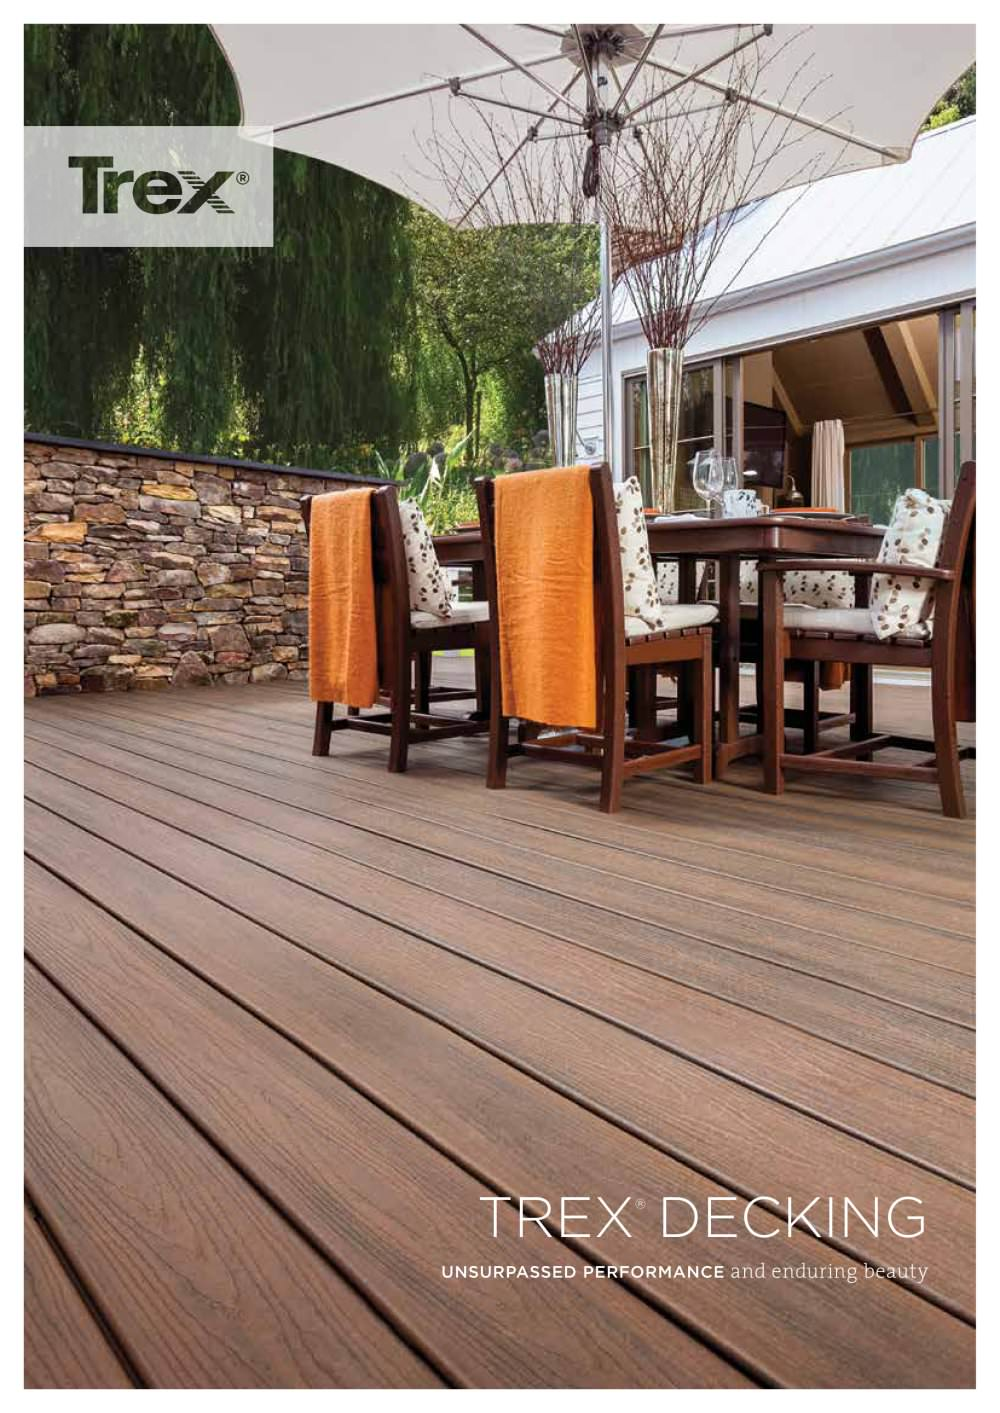 Amazing Trex Decking   1 / 20 Pages